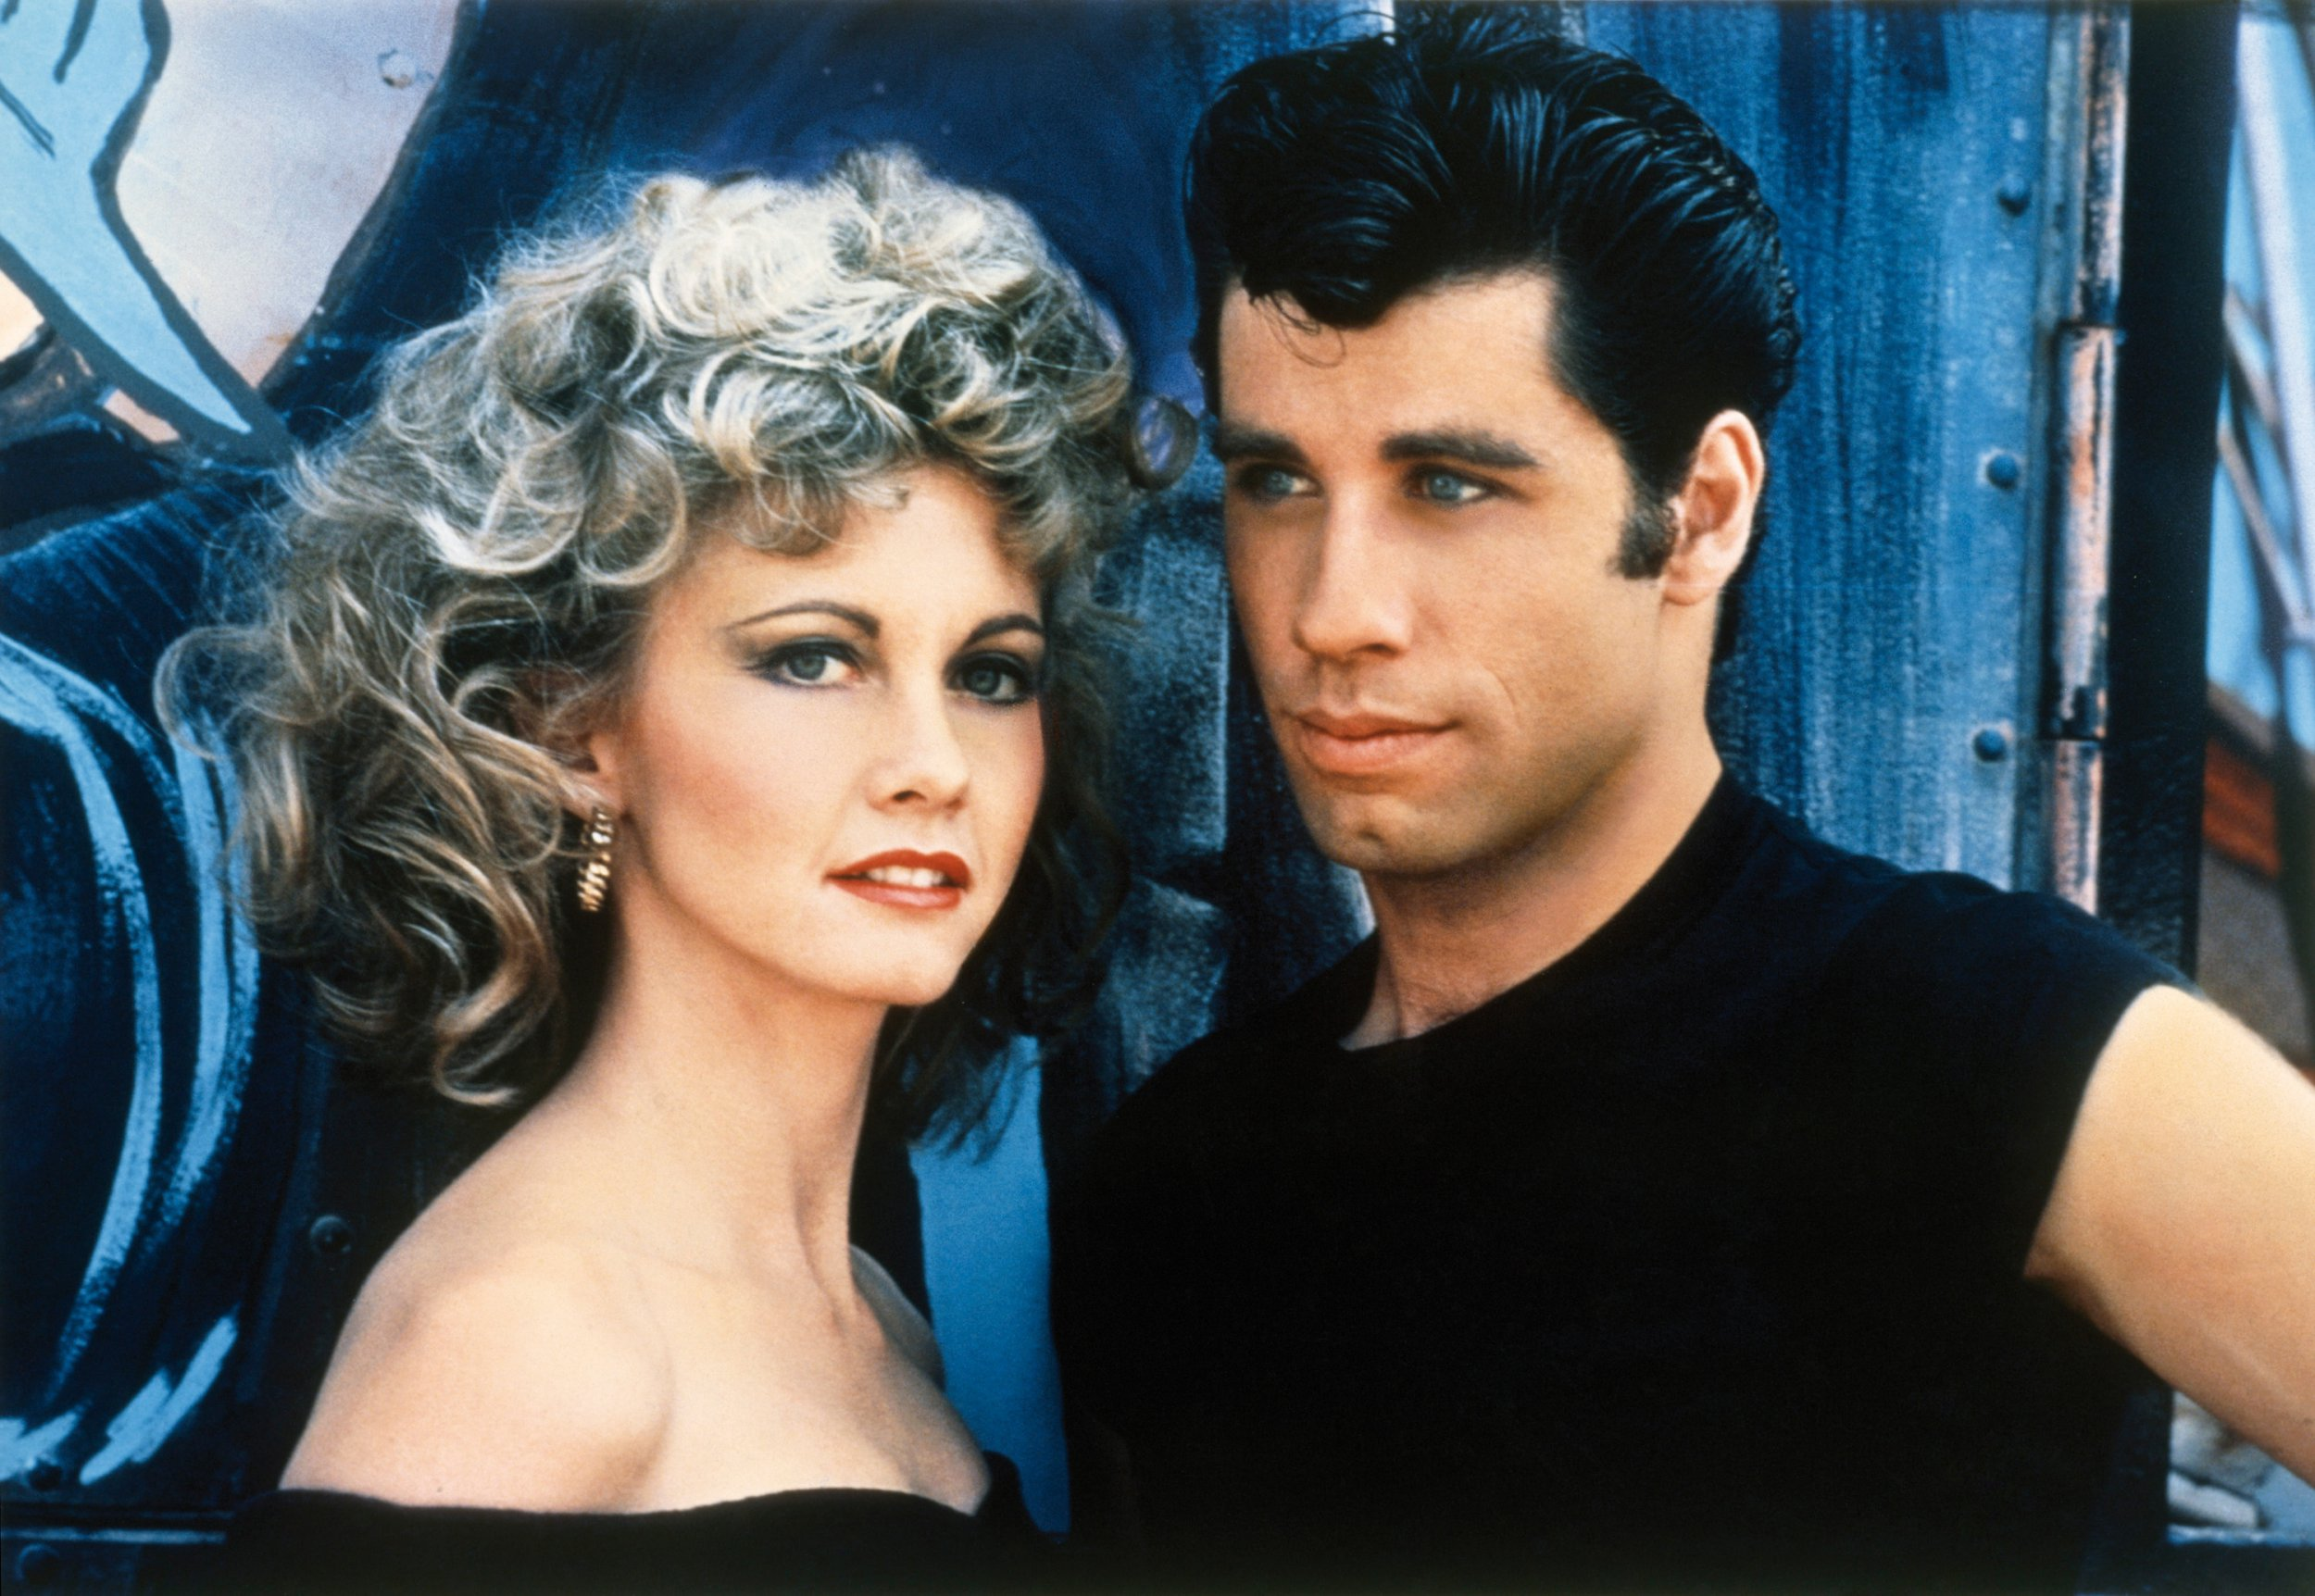 John Travolta shares his thoughts on grim Grease theory that suggests Sandy is actually dead